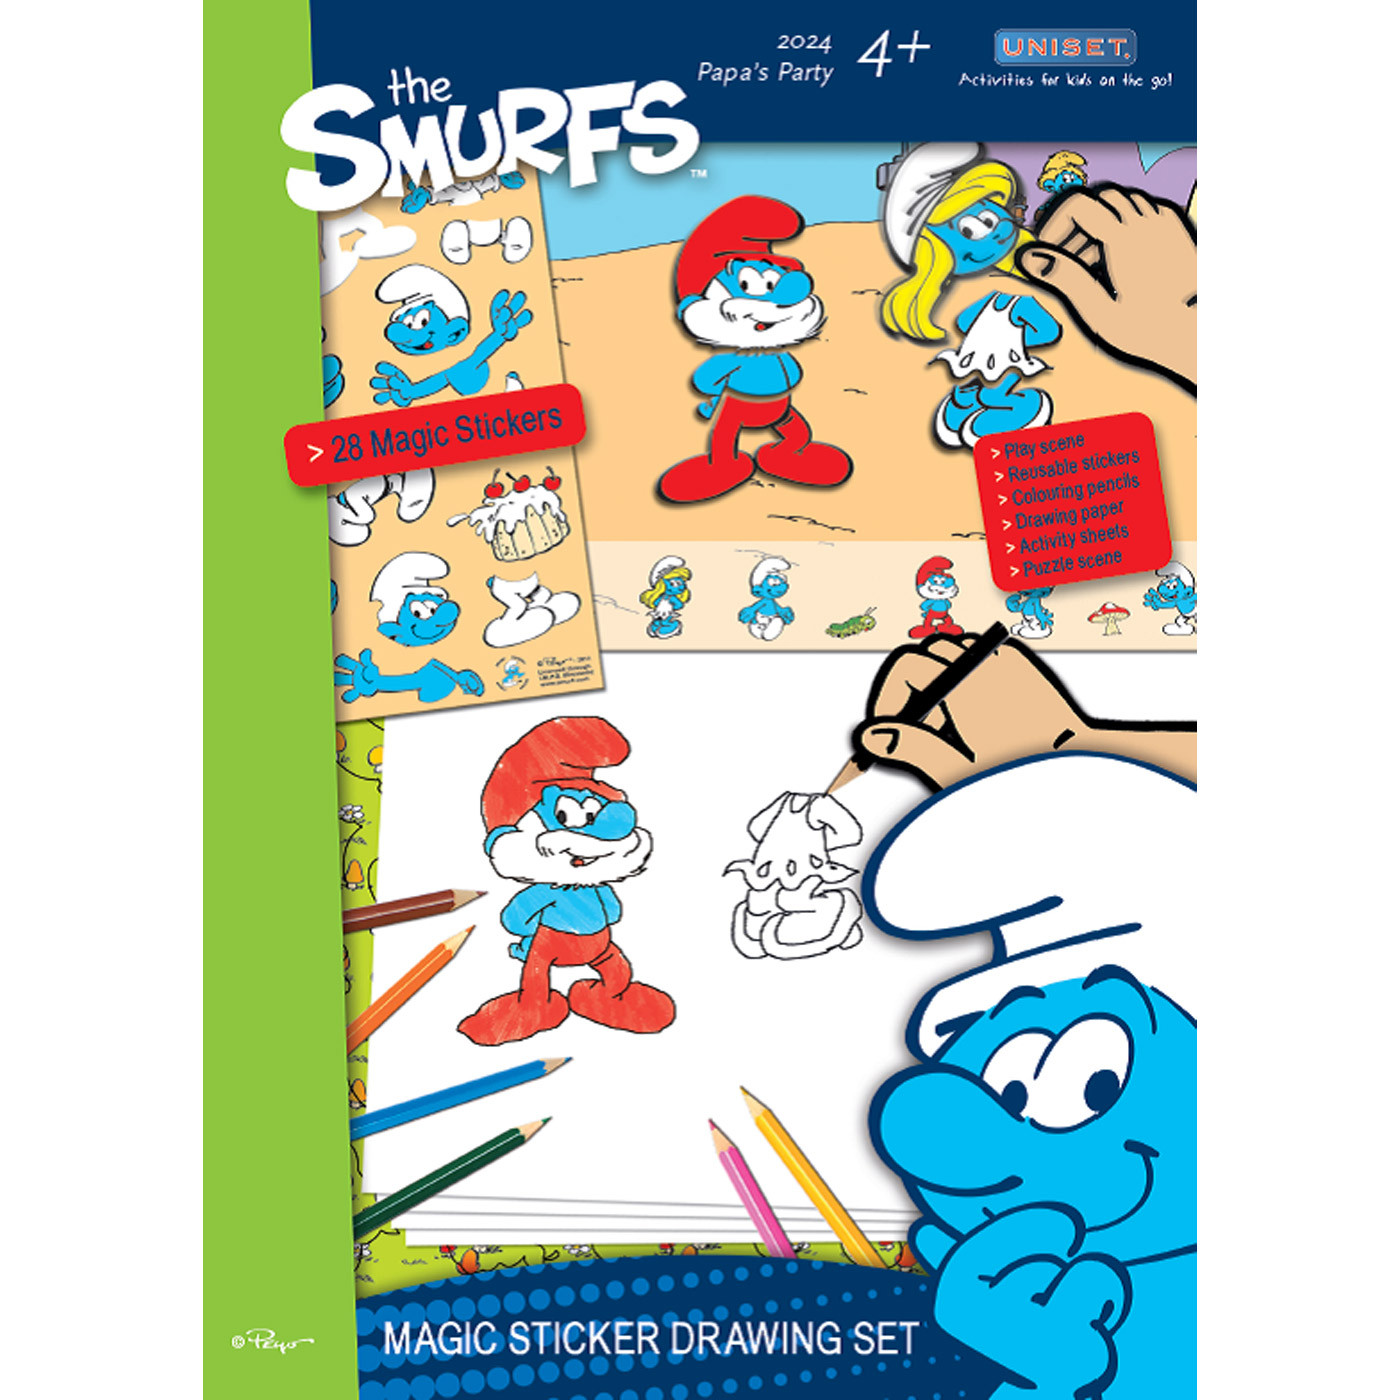 1400x1400 The Smurfs Magic Sticker Drawing Set Wind Designs